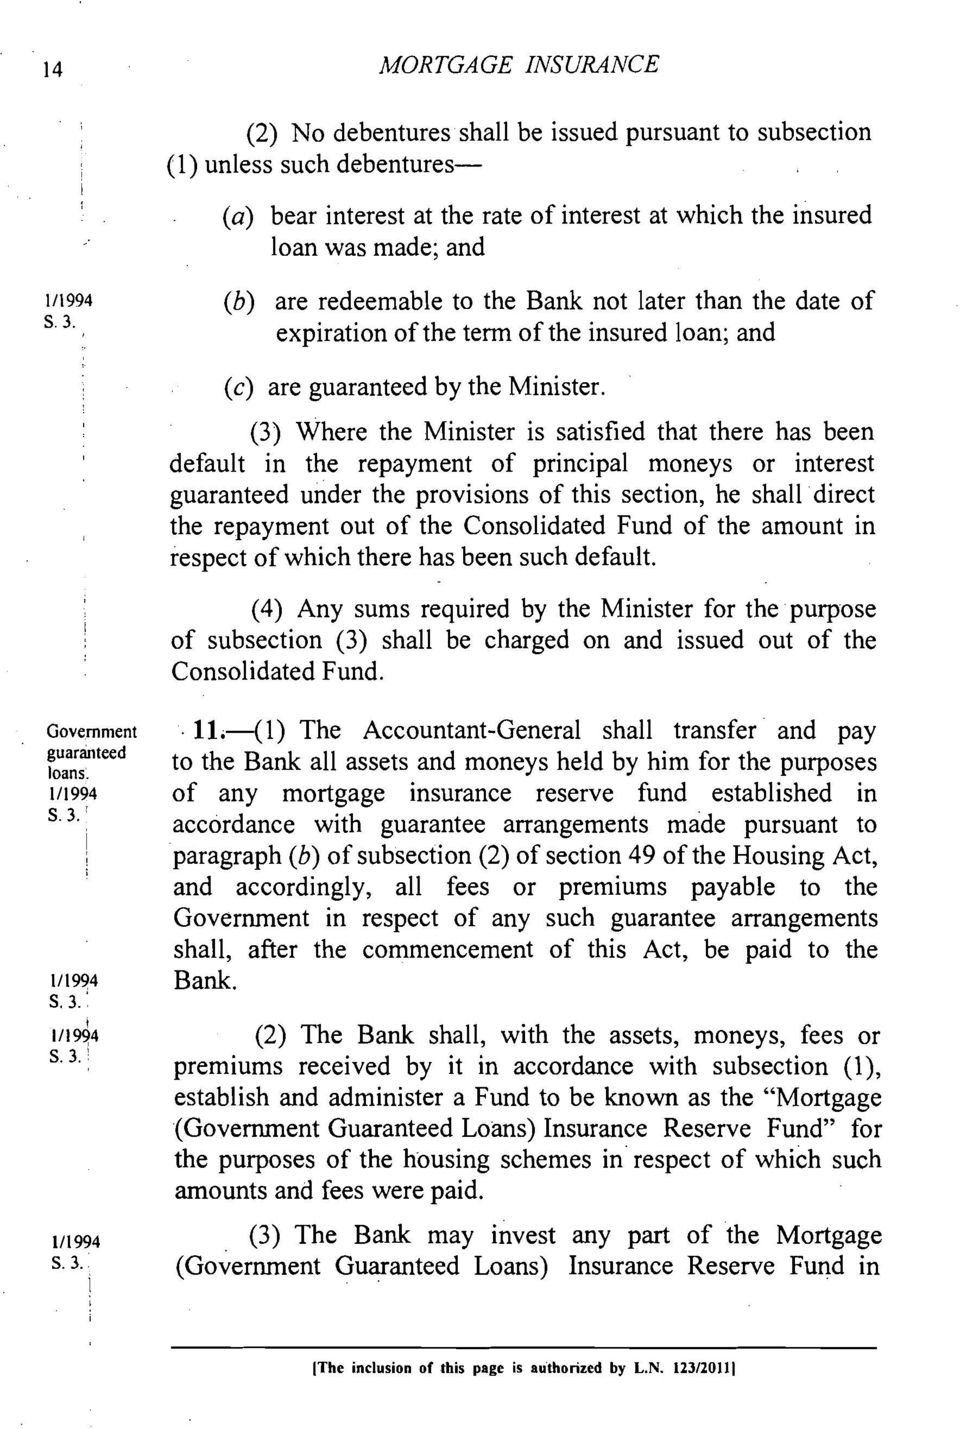 (3) Where the Minister is satisfied that there has been default in the repayment of principal moneys or interest guaranteed under the provisions of this section, he shall direct the repayment out of